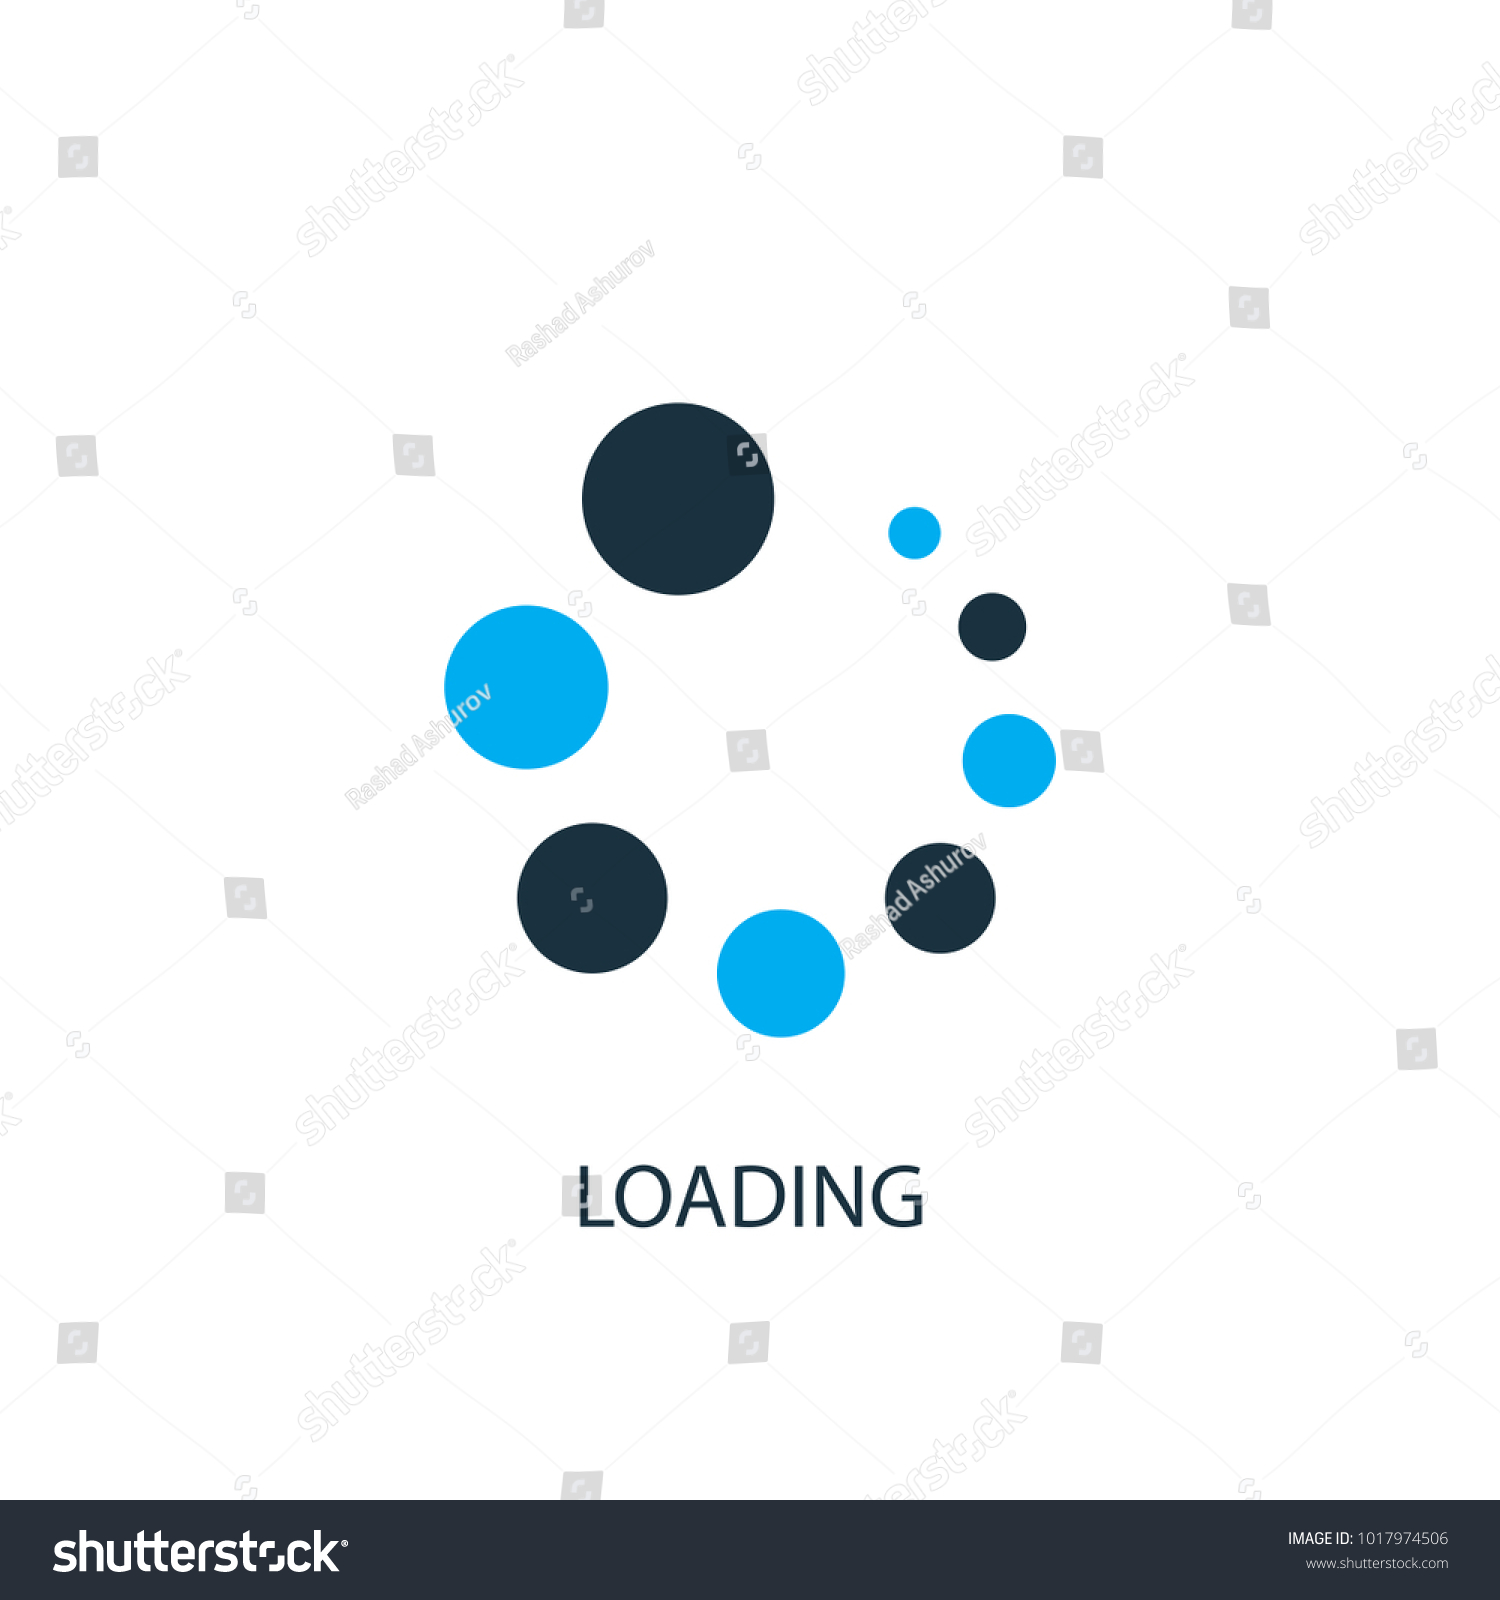 Loading icon logo element illustration loading stock vector loading icon logo element illustration loading symbol design from 2 colored collection simple biocorpaavc Image collections